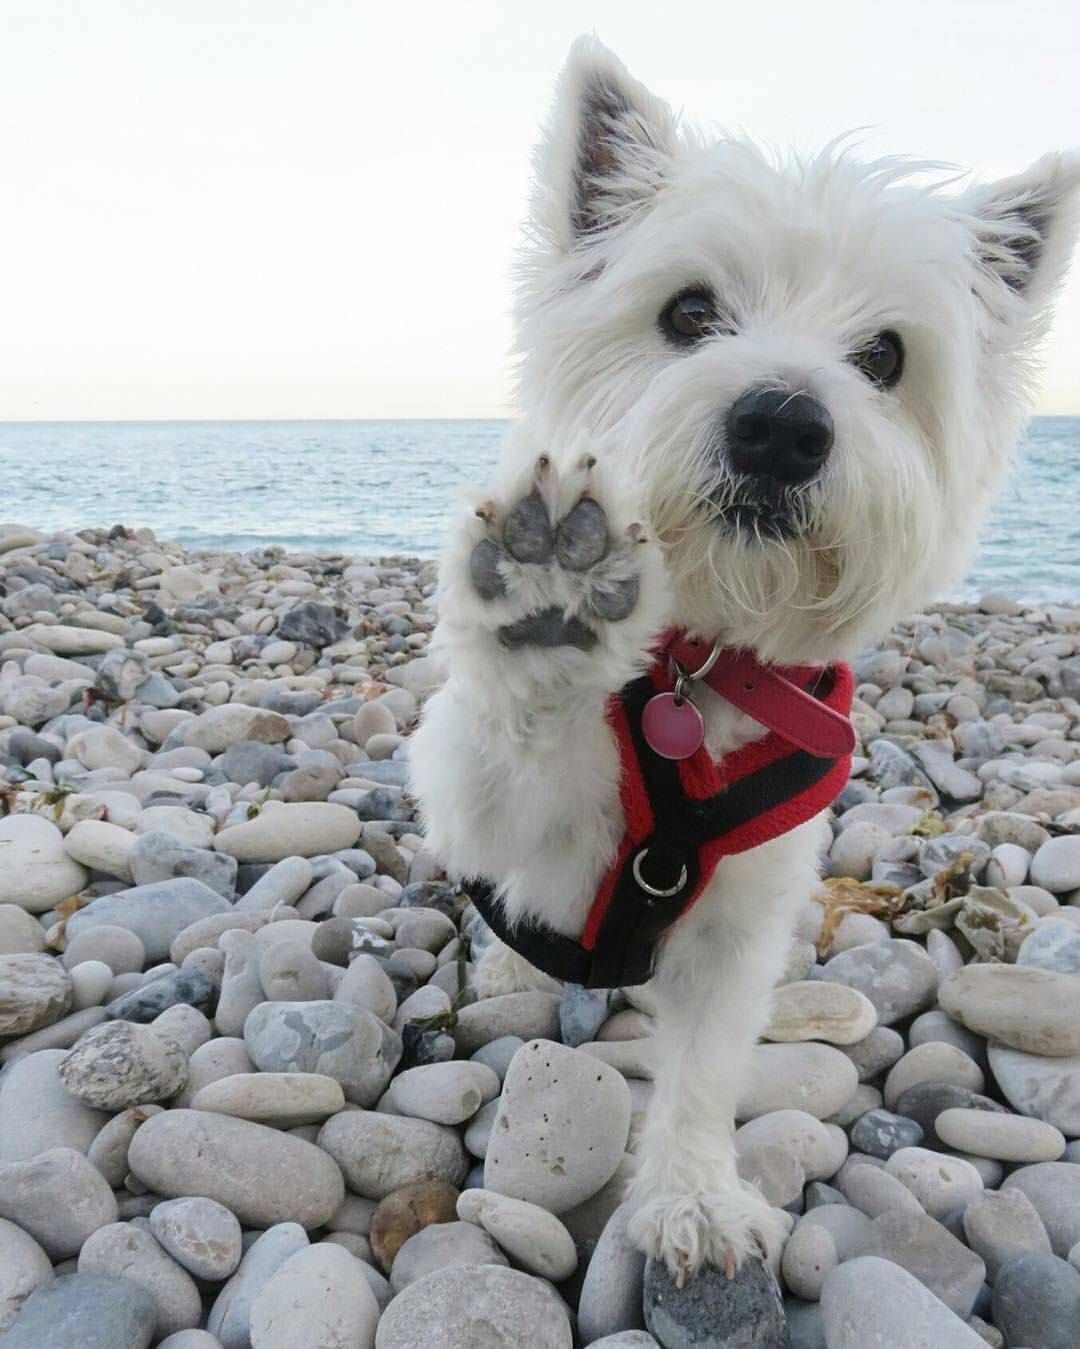 9 Sings Your Westie Thinks He S Boss Sonderlives